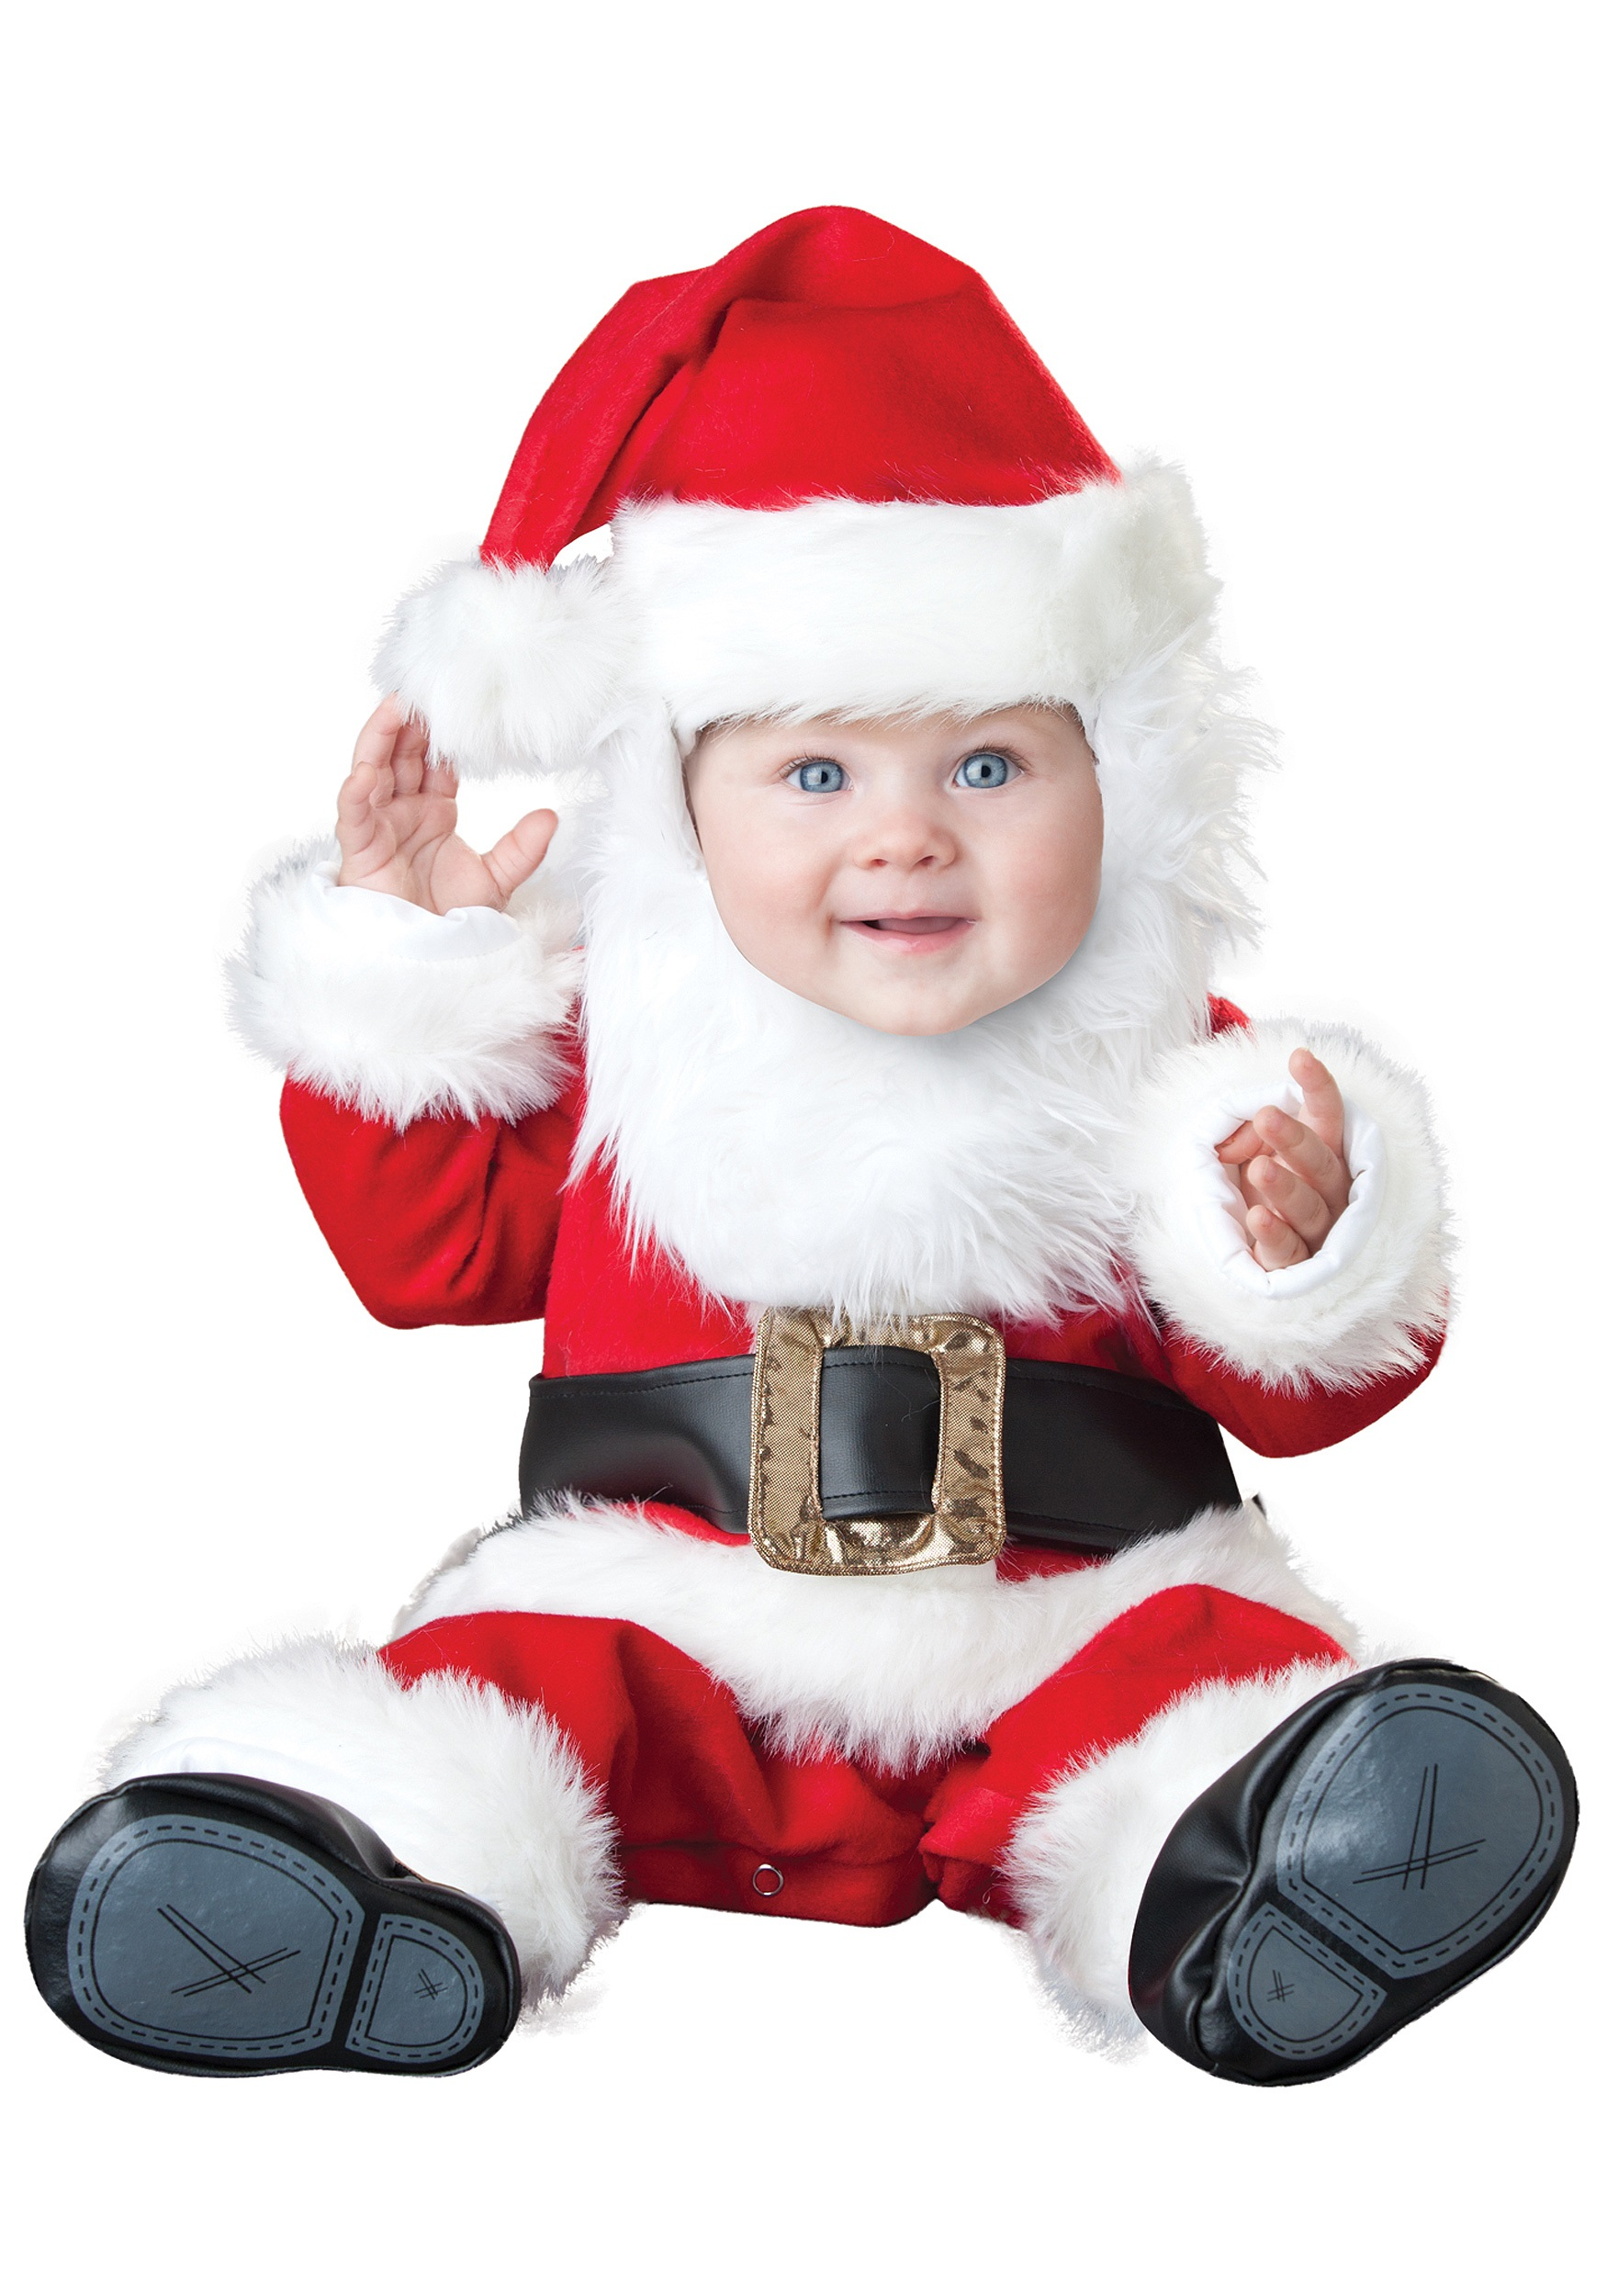 Santa Claus Costumes - Adult, Plus Size, Kids Santa Claus Costume